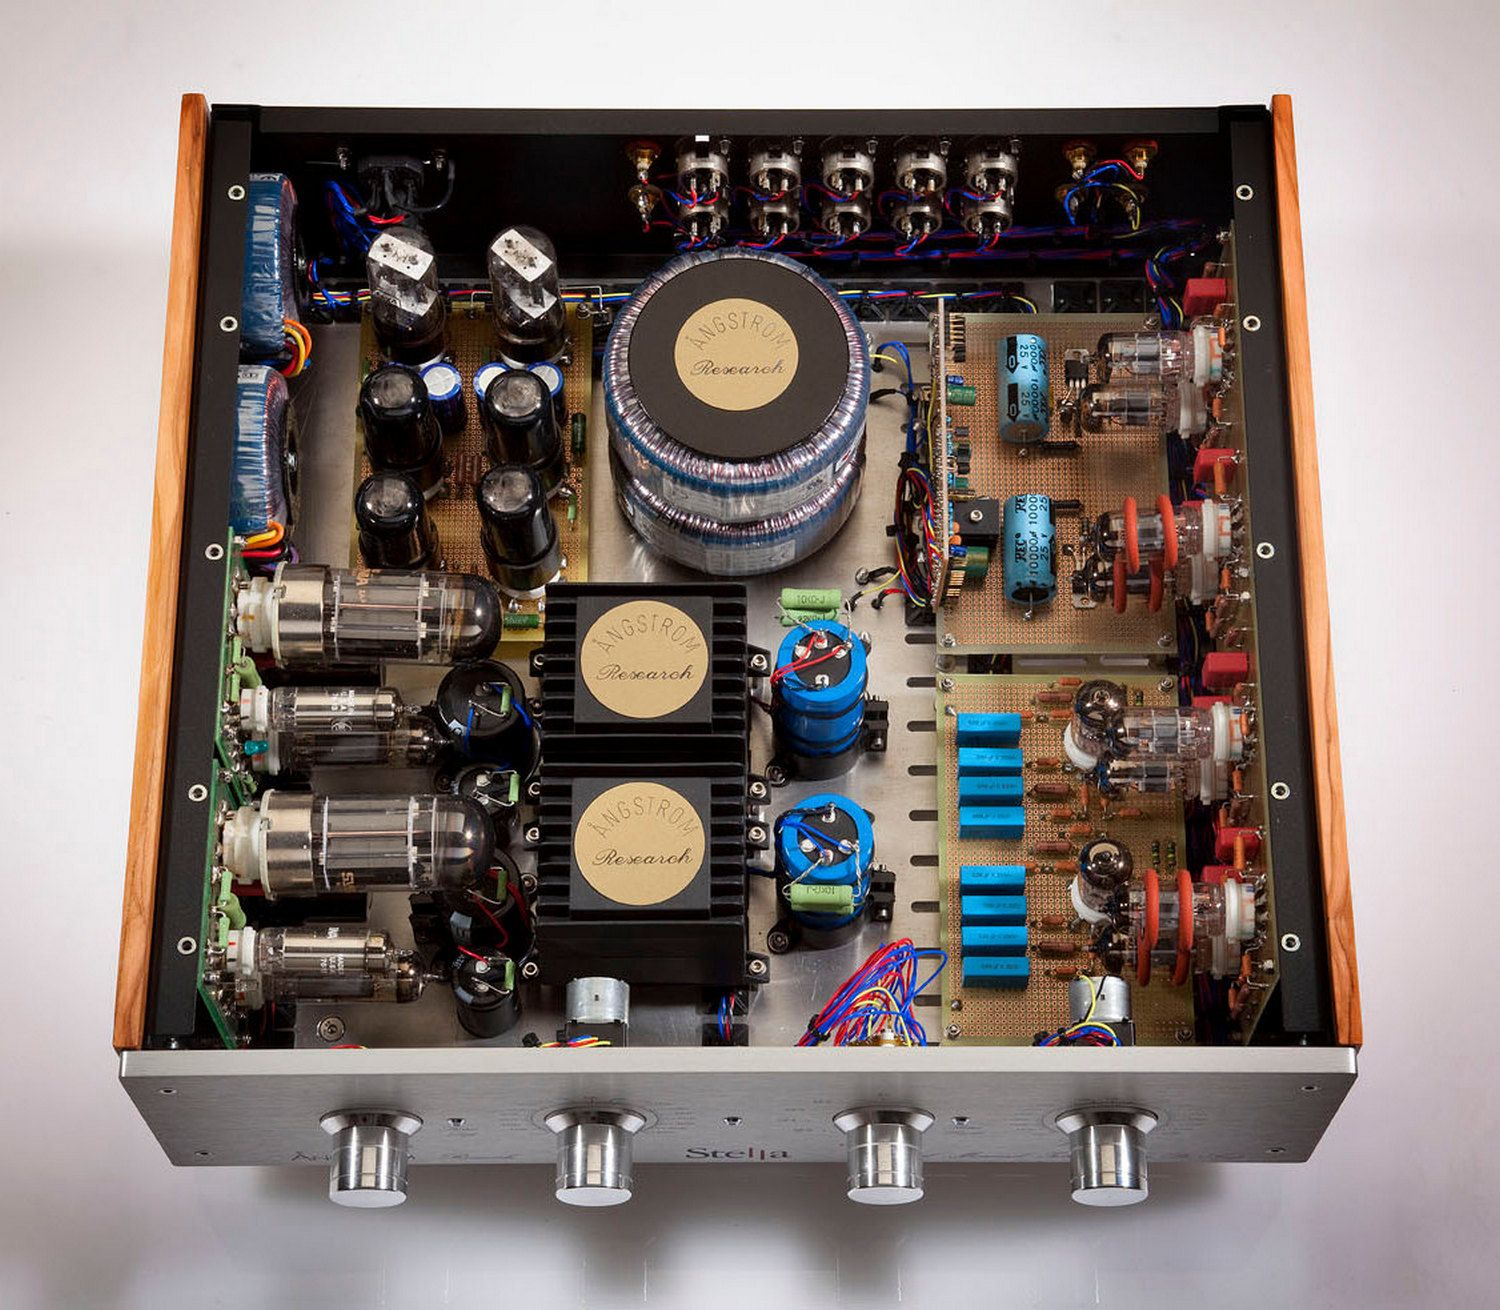 Pin By Daddiest On Tube Amplifiers Pinterest Audio Audiophile Valve Amplifier Speakers Vacuum Turntable Lab Gold Record Player